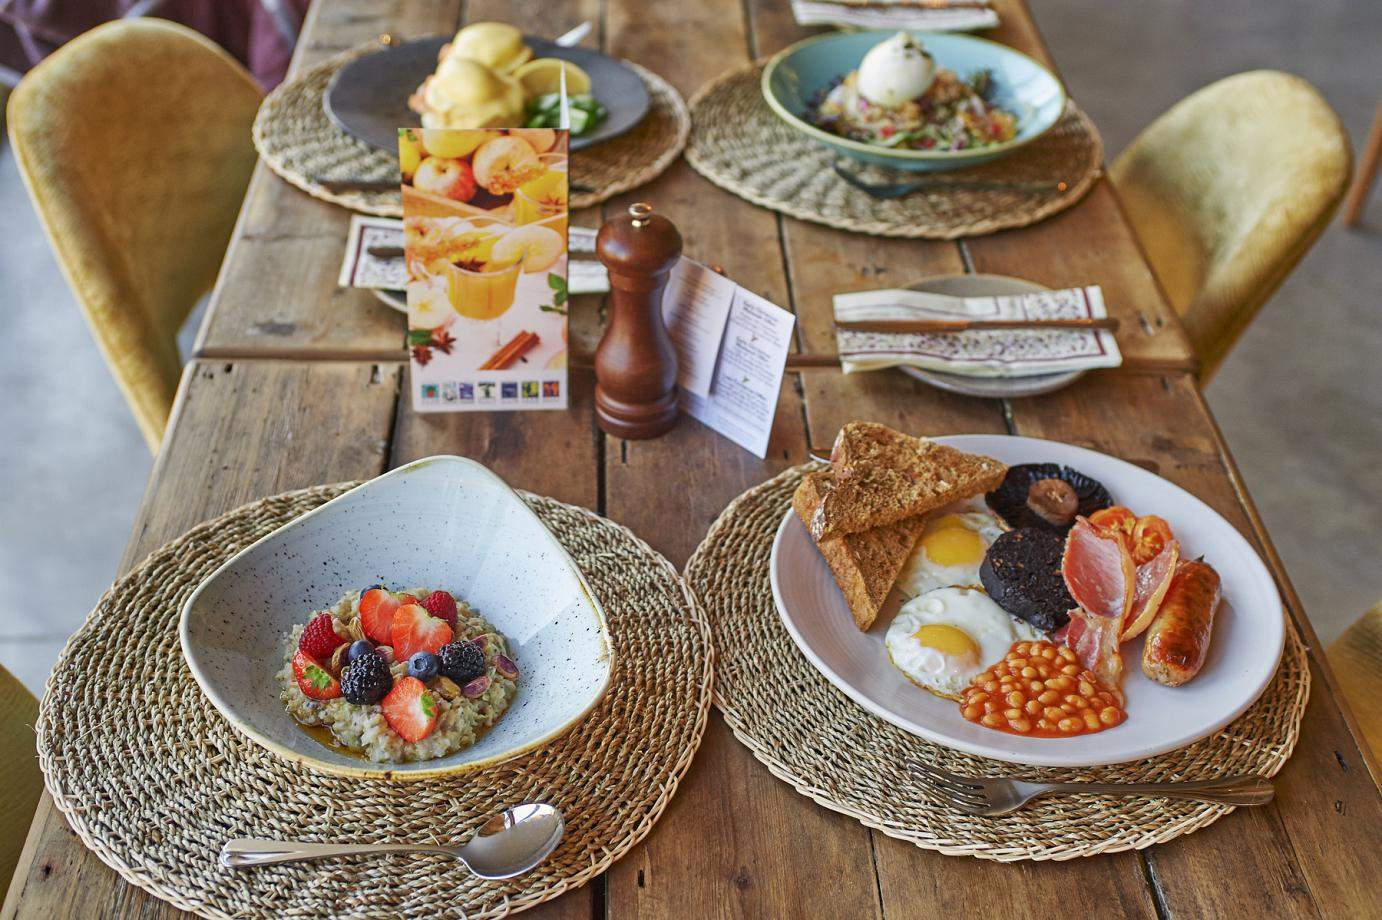 Breakfast at The Potting Shed